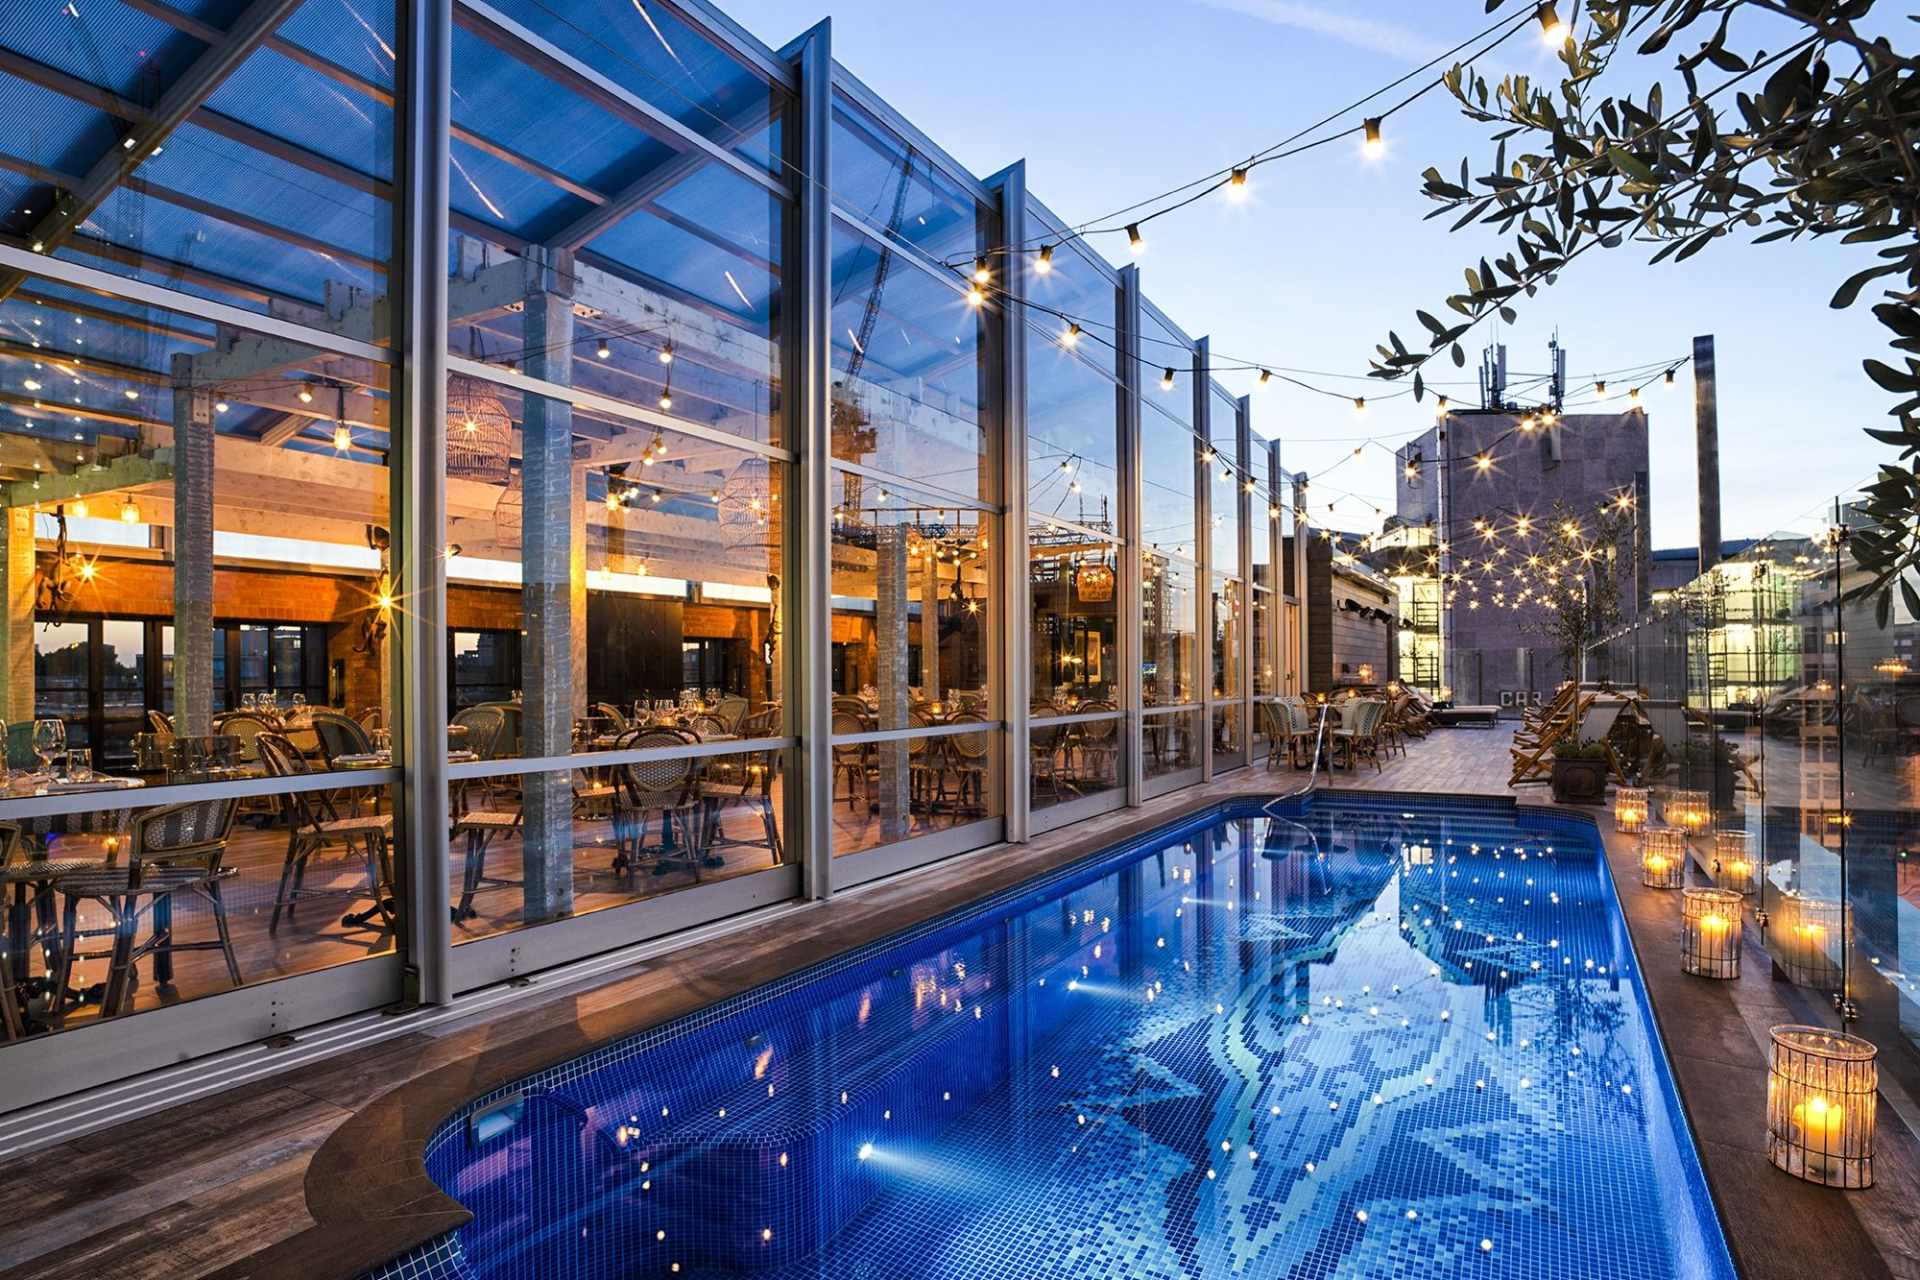 mondrian-rooftop-pool-with-fairy-lights-shoreditch